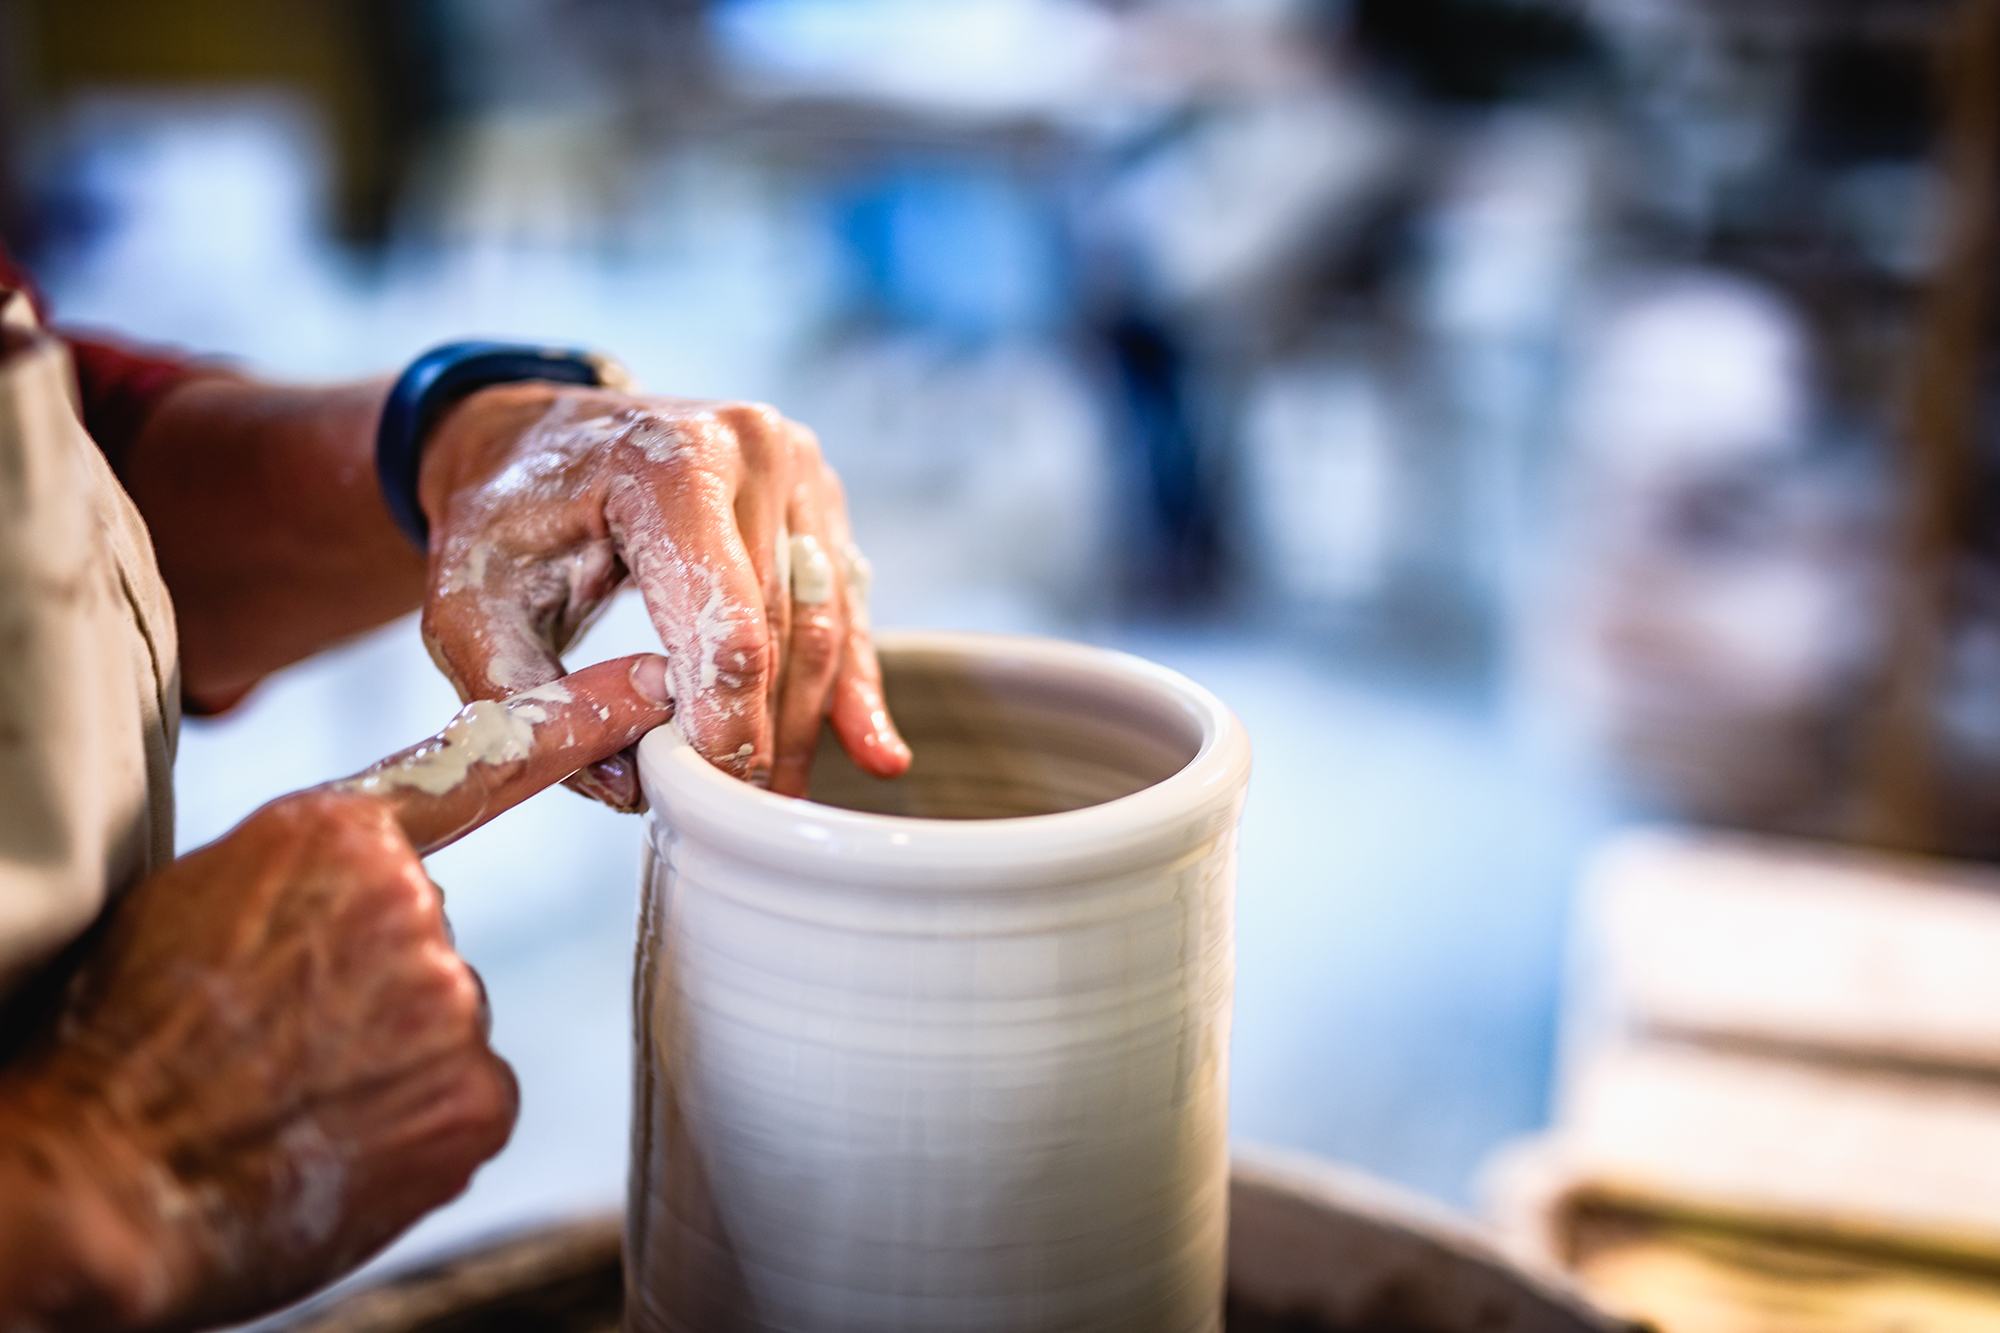 Pottery demonstration, hands throwing clay on the wheel